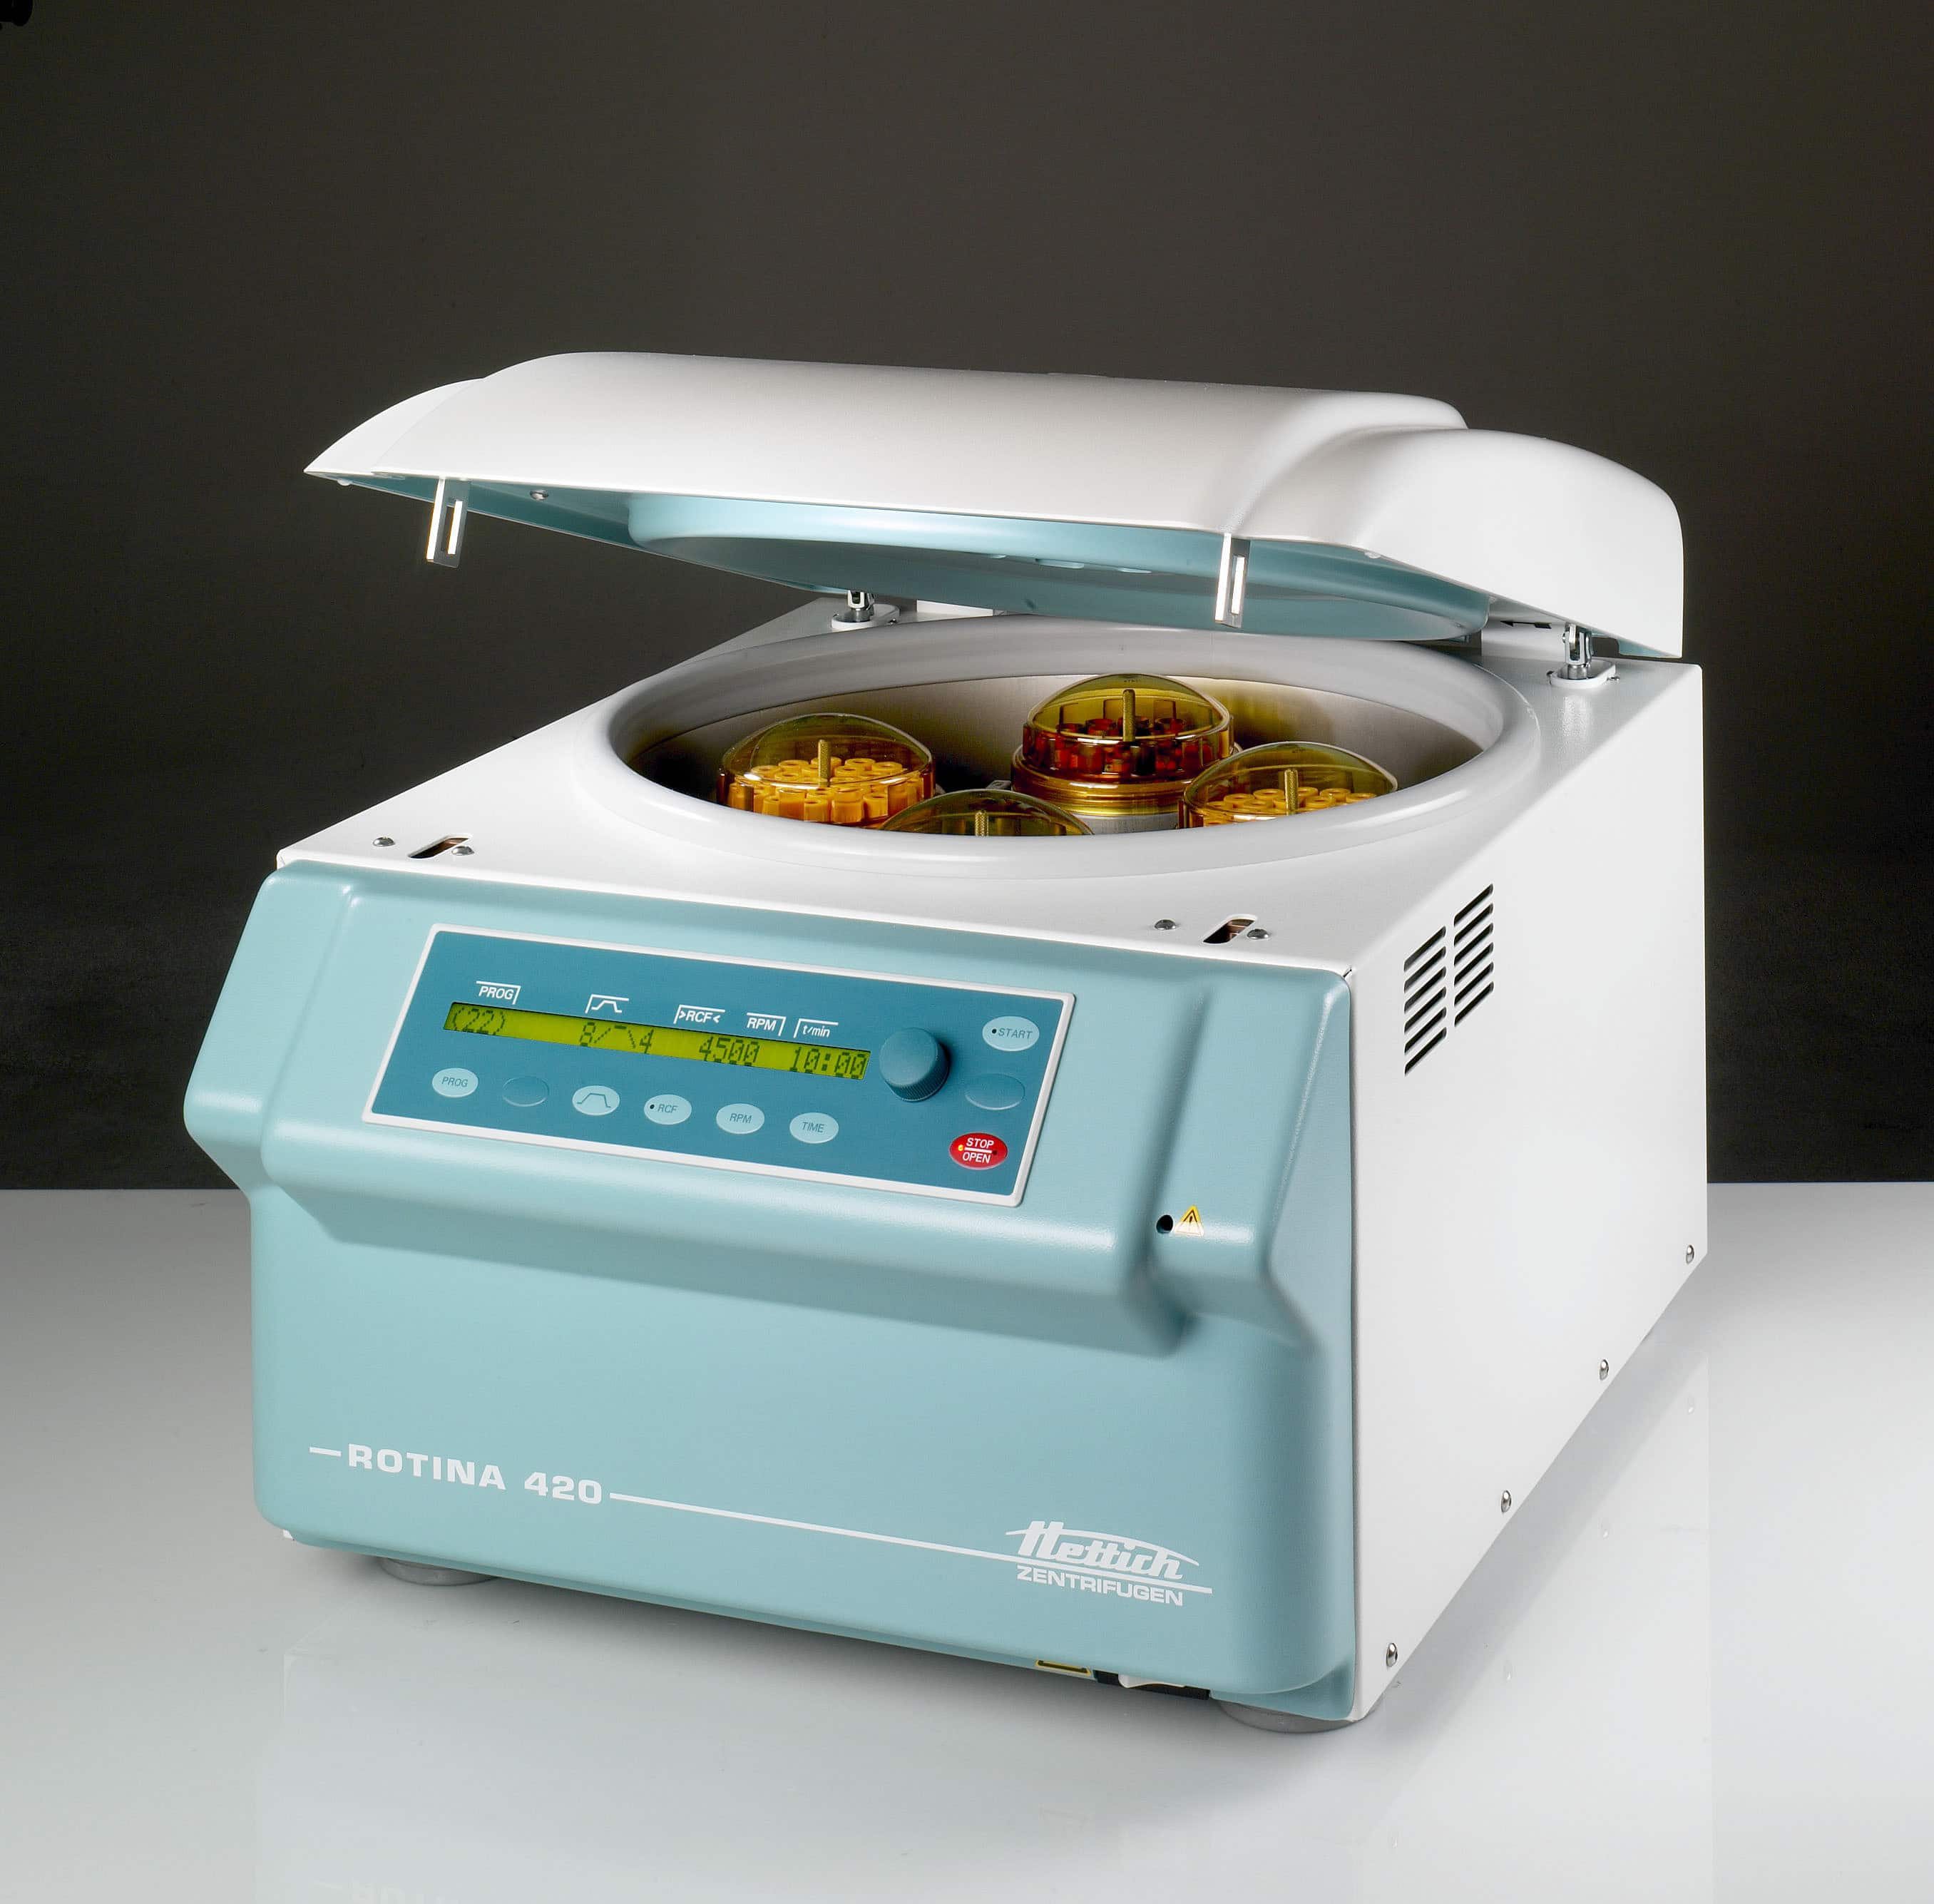 centrifuge milk Ics- gerber centrifuge gerber centrifuges are offered for checking fat content in milk, butter, ghee etc and are available in various models ( 12 /24test) of both hand and electrical operated, auto stop, timer, noise free provision.